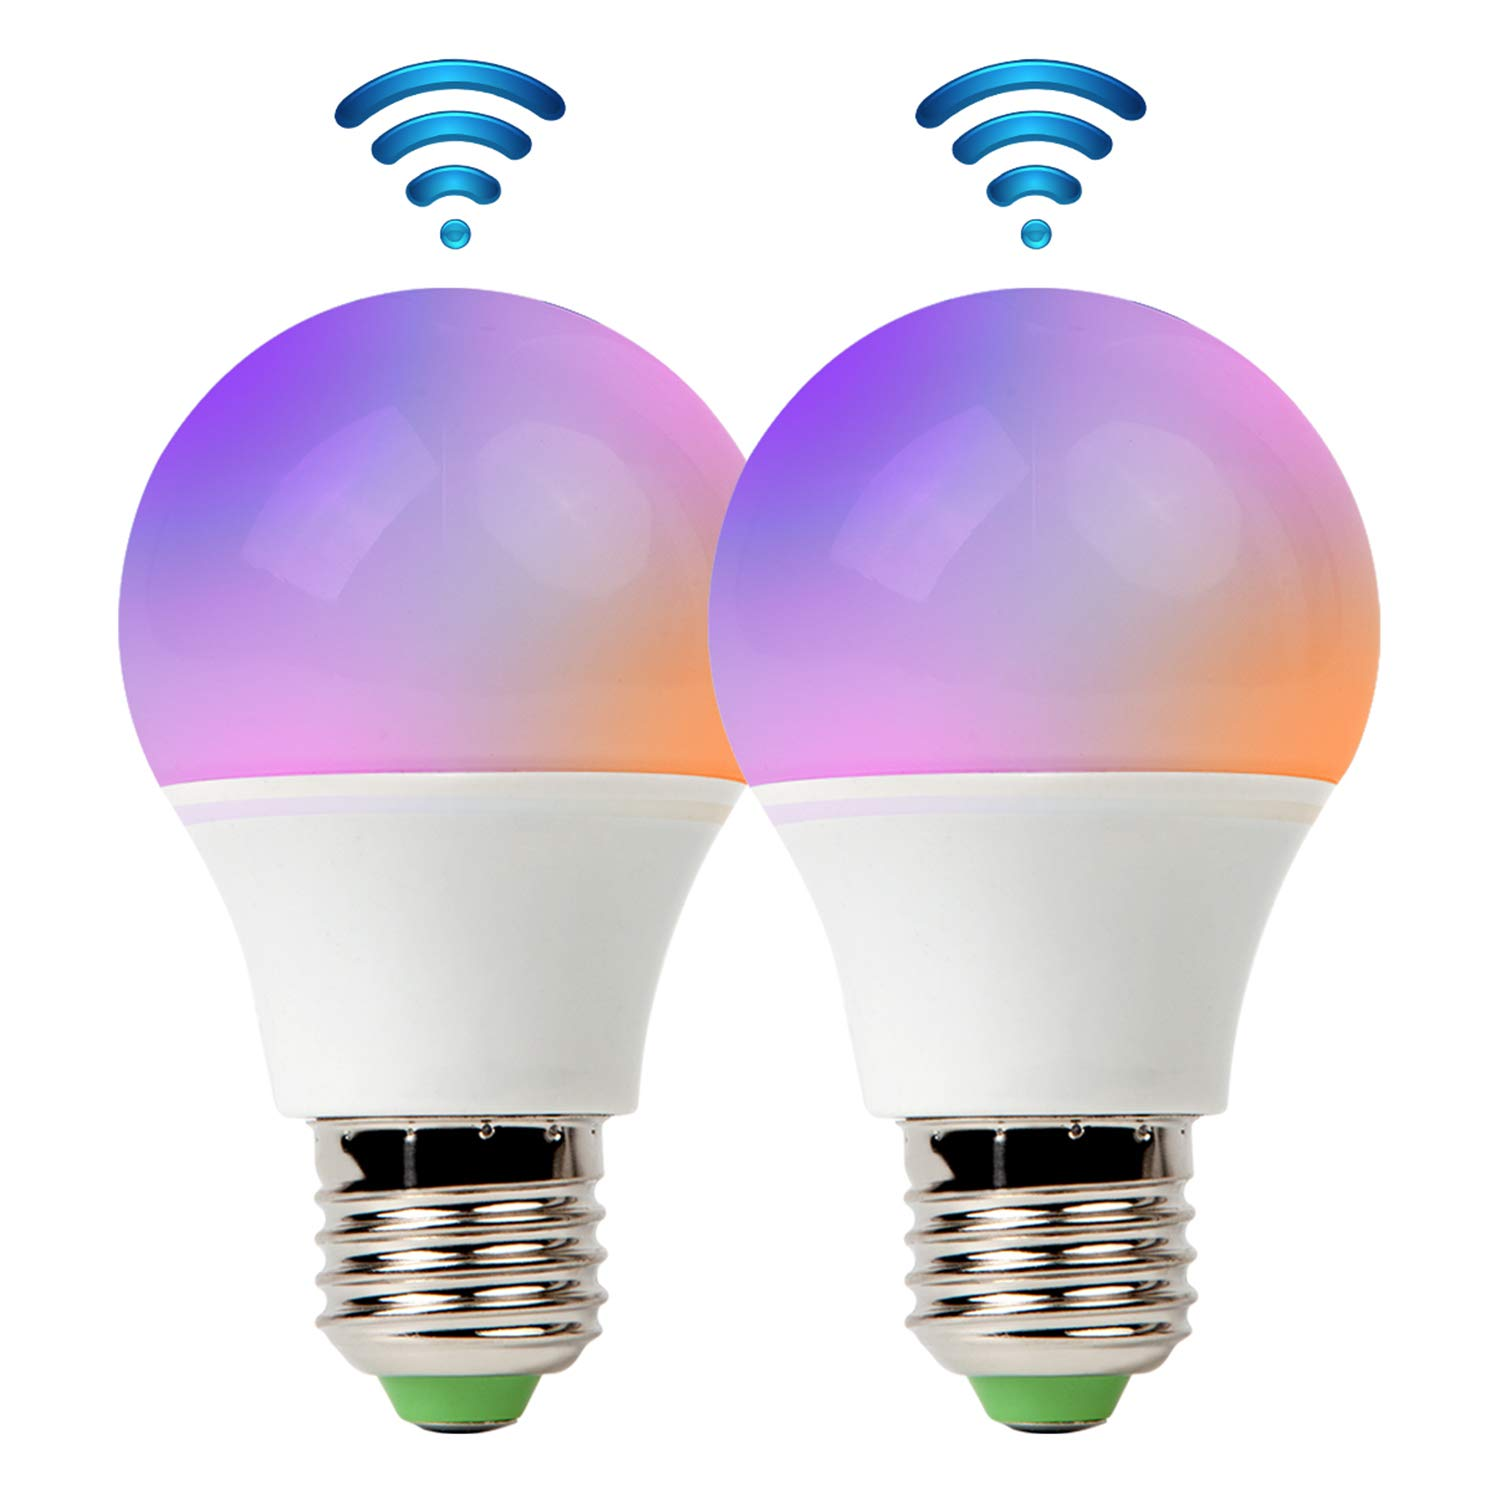 RGB LED Smart Bulb,WiFi Light Bulb,Multicolor,Dimmable,No Hub Required, 40W Equivalent, Works with Amazon Echo Alexa and Google Home Assistant,2700K-6500K,450lm,CE/FCC/UL Listed (2-Pack-4.5W)